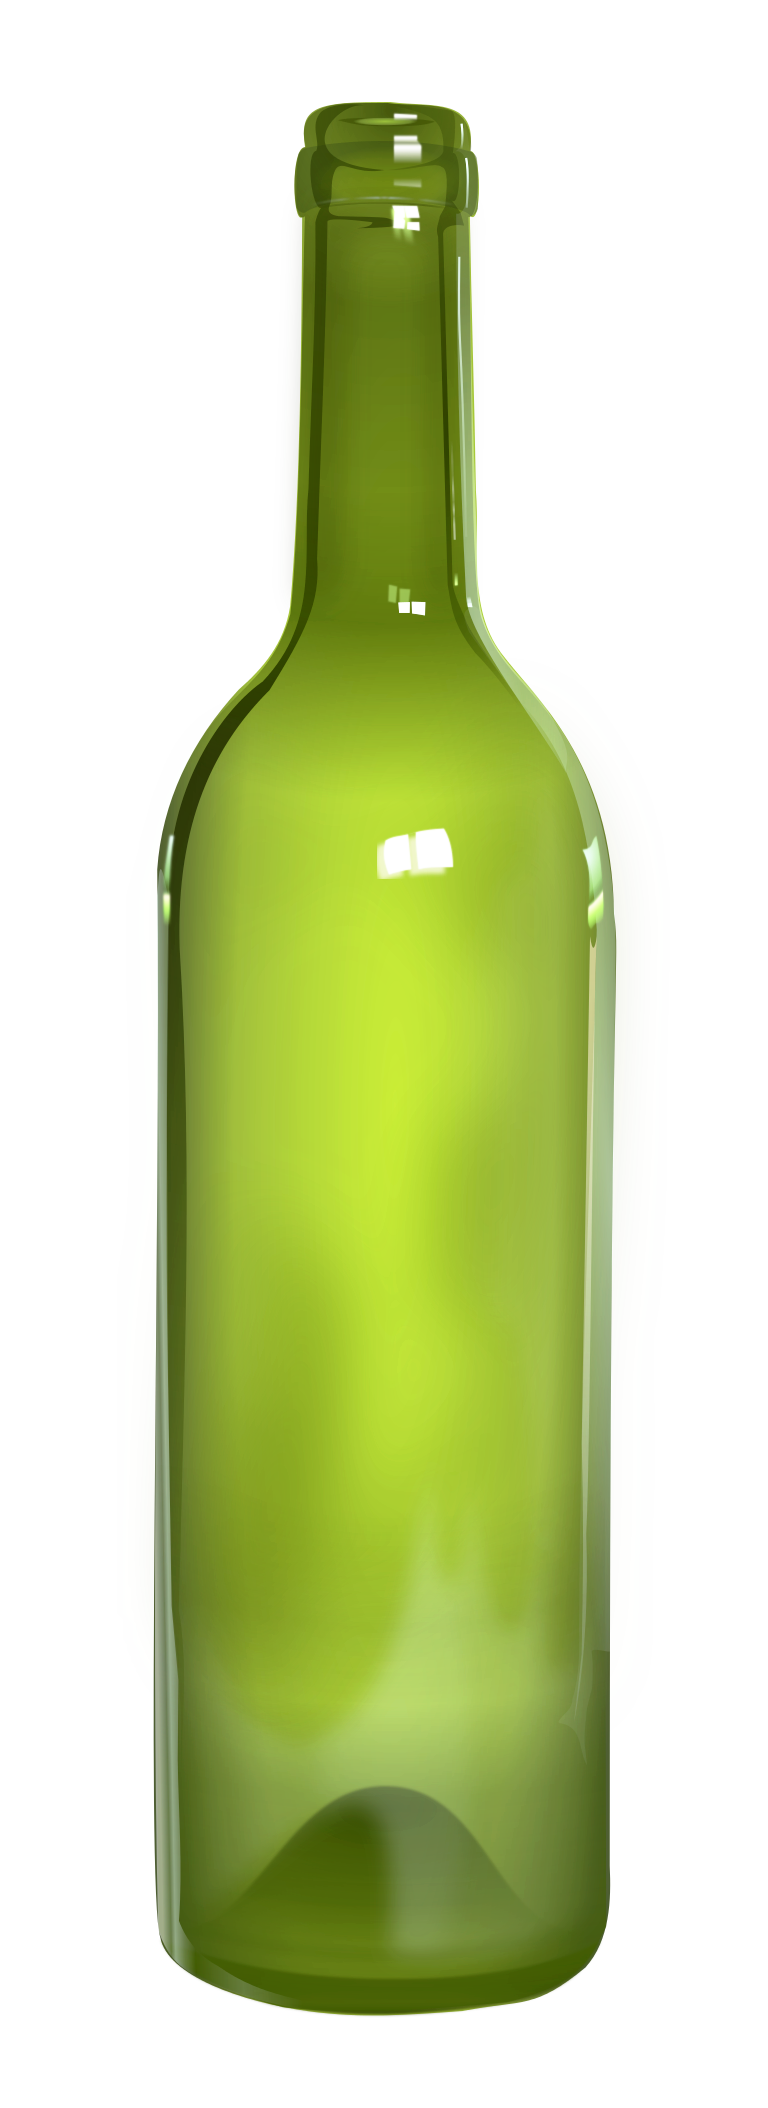 Green Large Glass Bottle image #48921